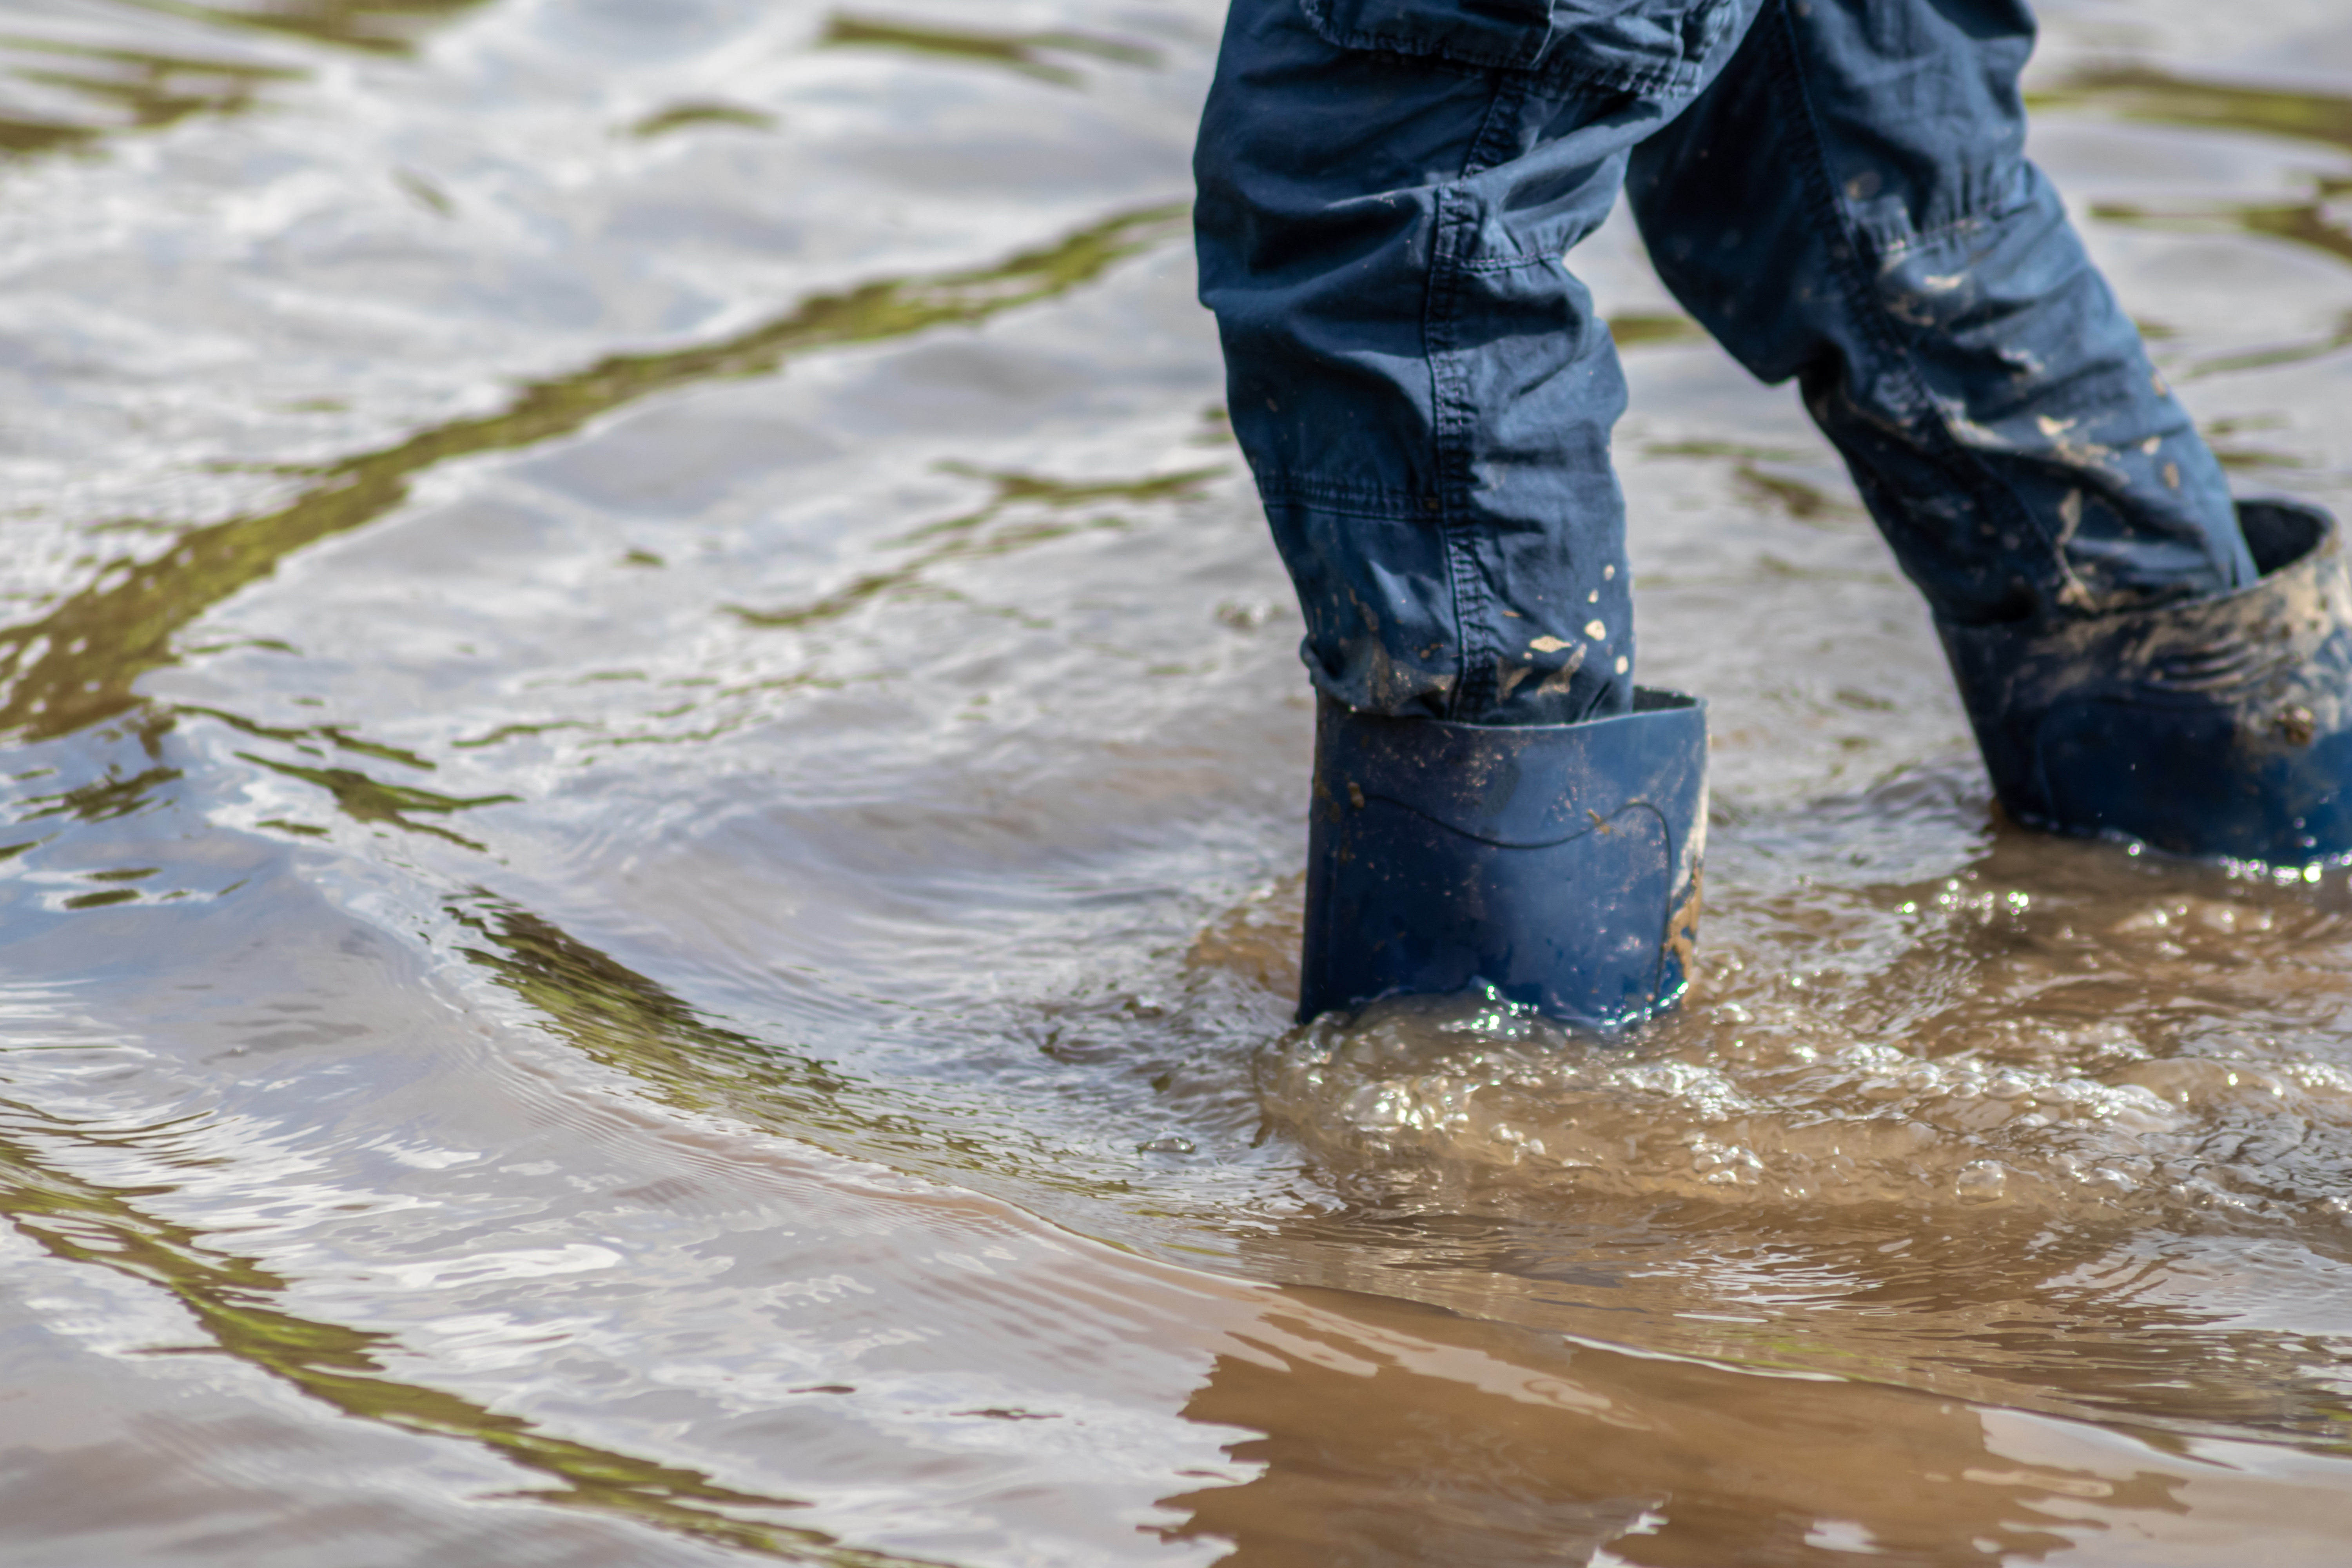 child's feet wading in water